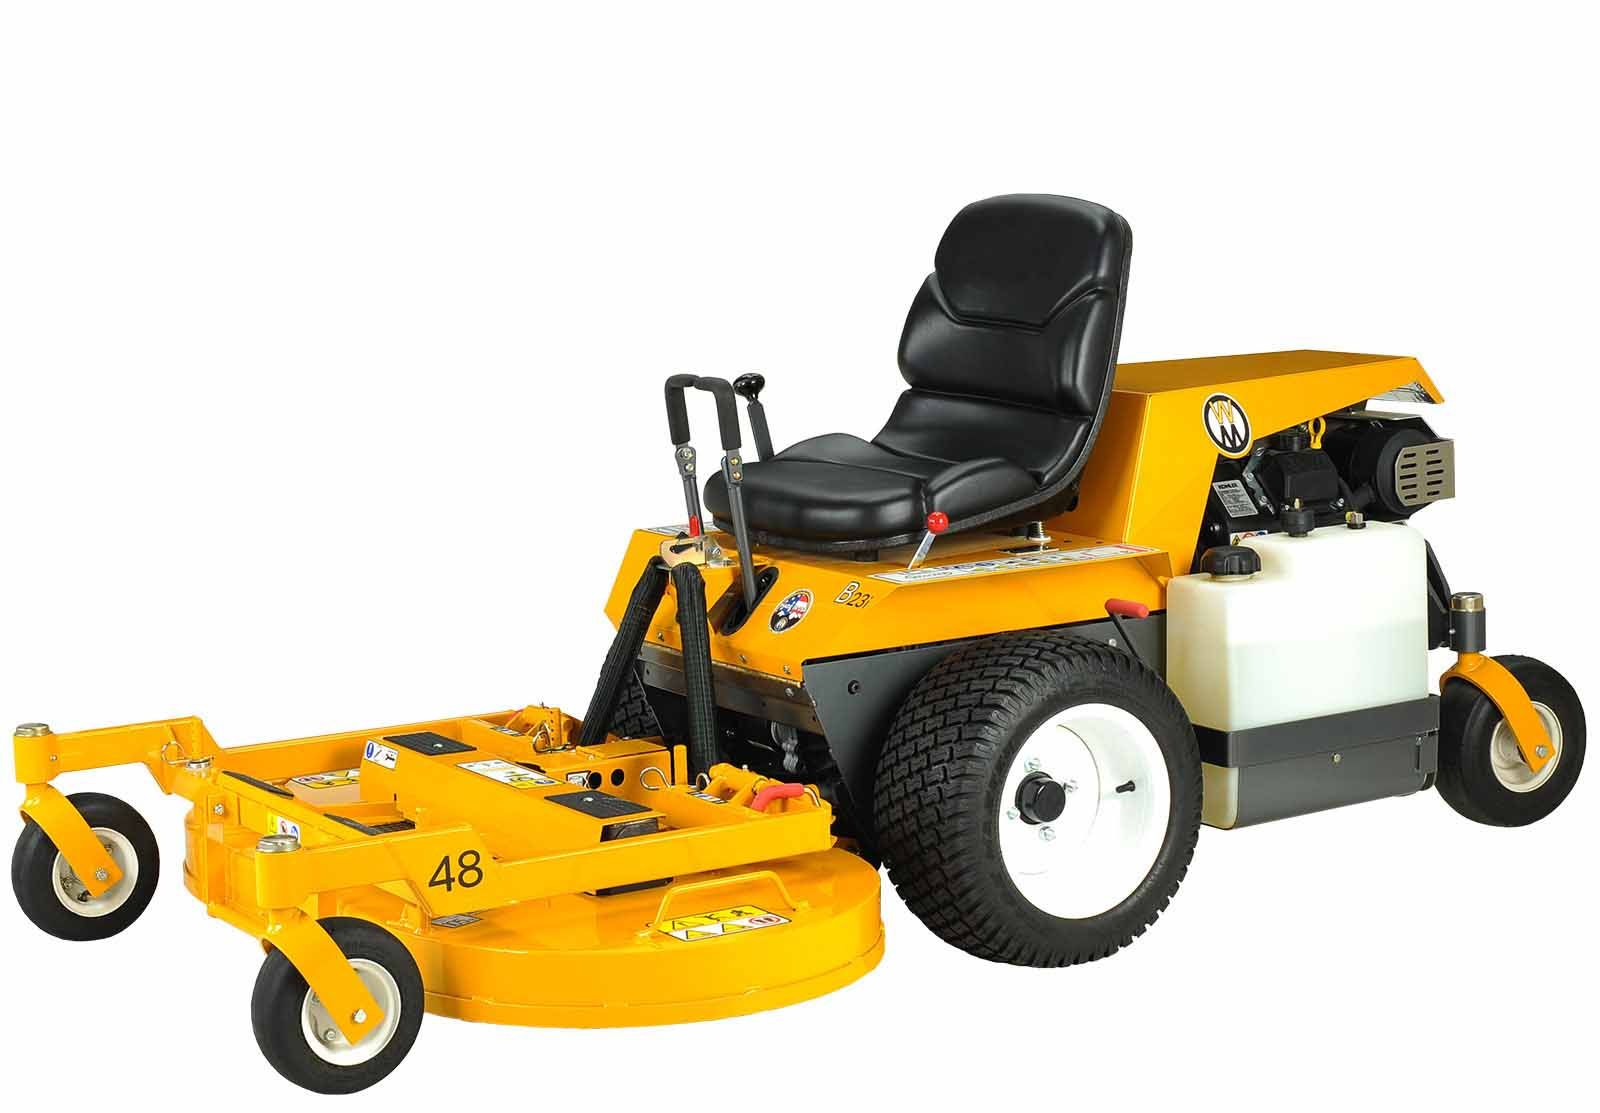 Walker Mowers MB23i Side Discharge (Non-Collection) EFI Gas Mower 23HP